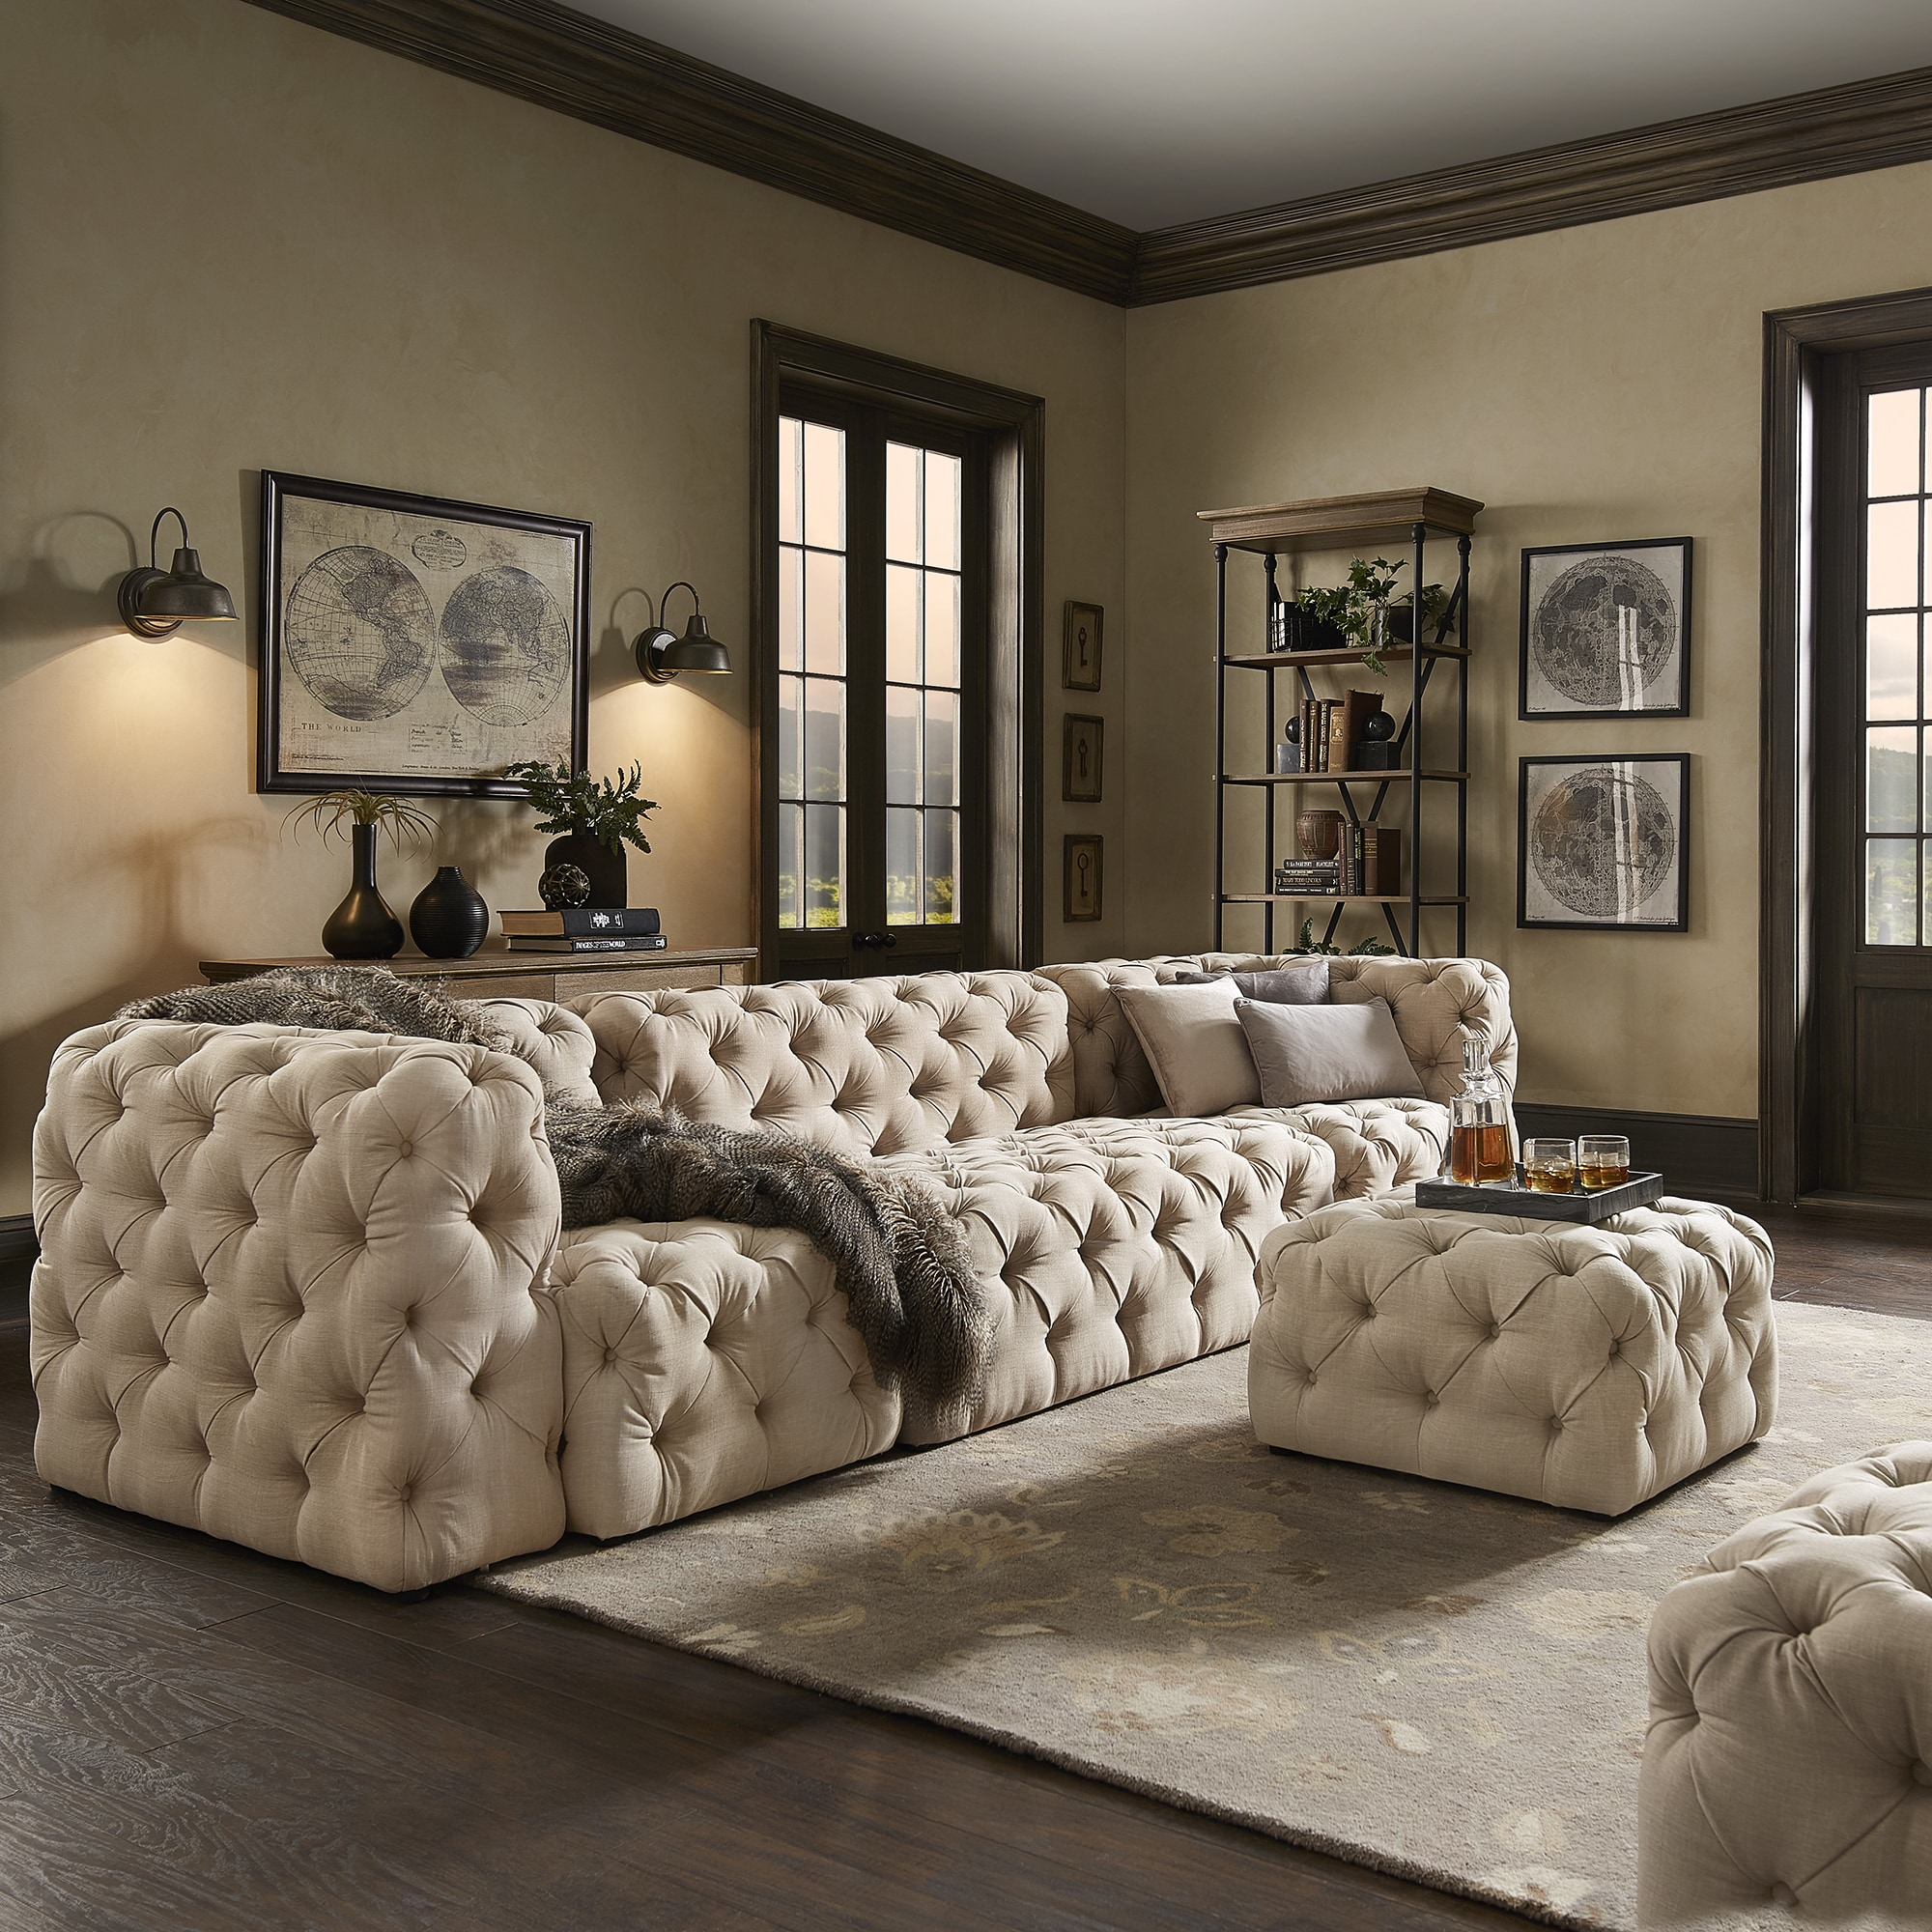 Cheap Modular Lounges Knightsbridge Ii Beige Linen Tufted Extra Long Chesterfield Modular Sofa By Inspire Q Artisan